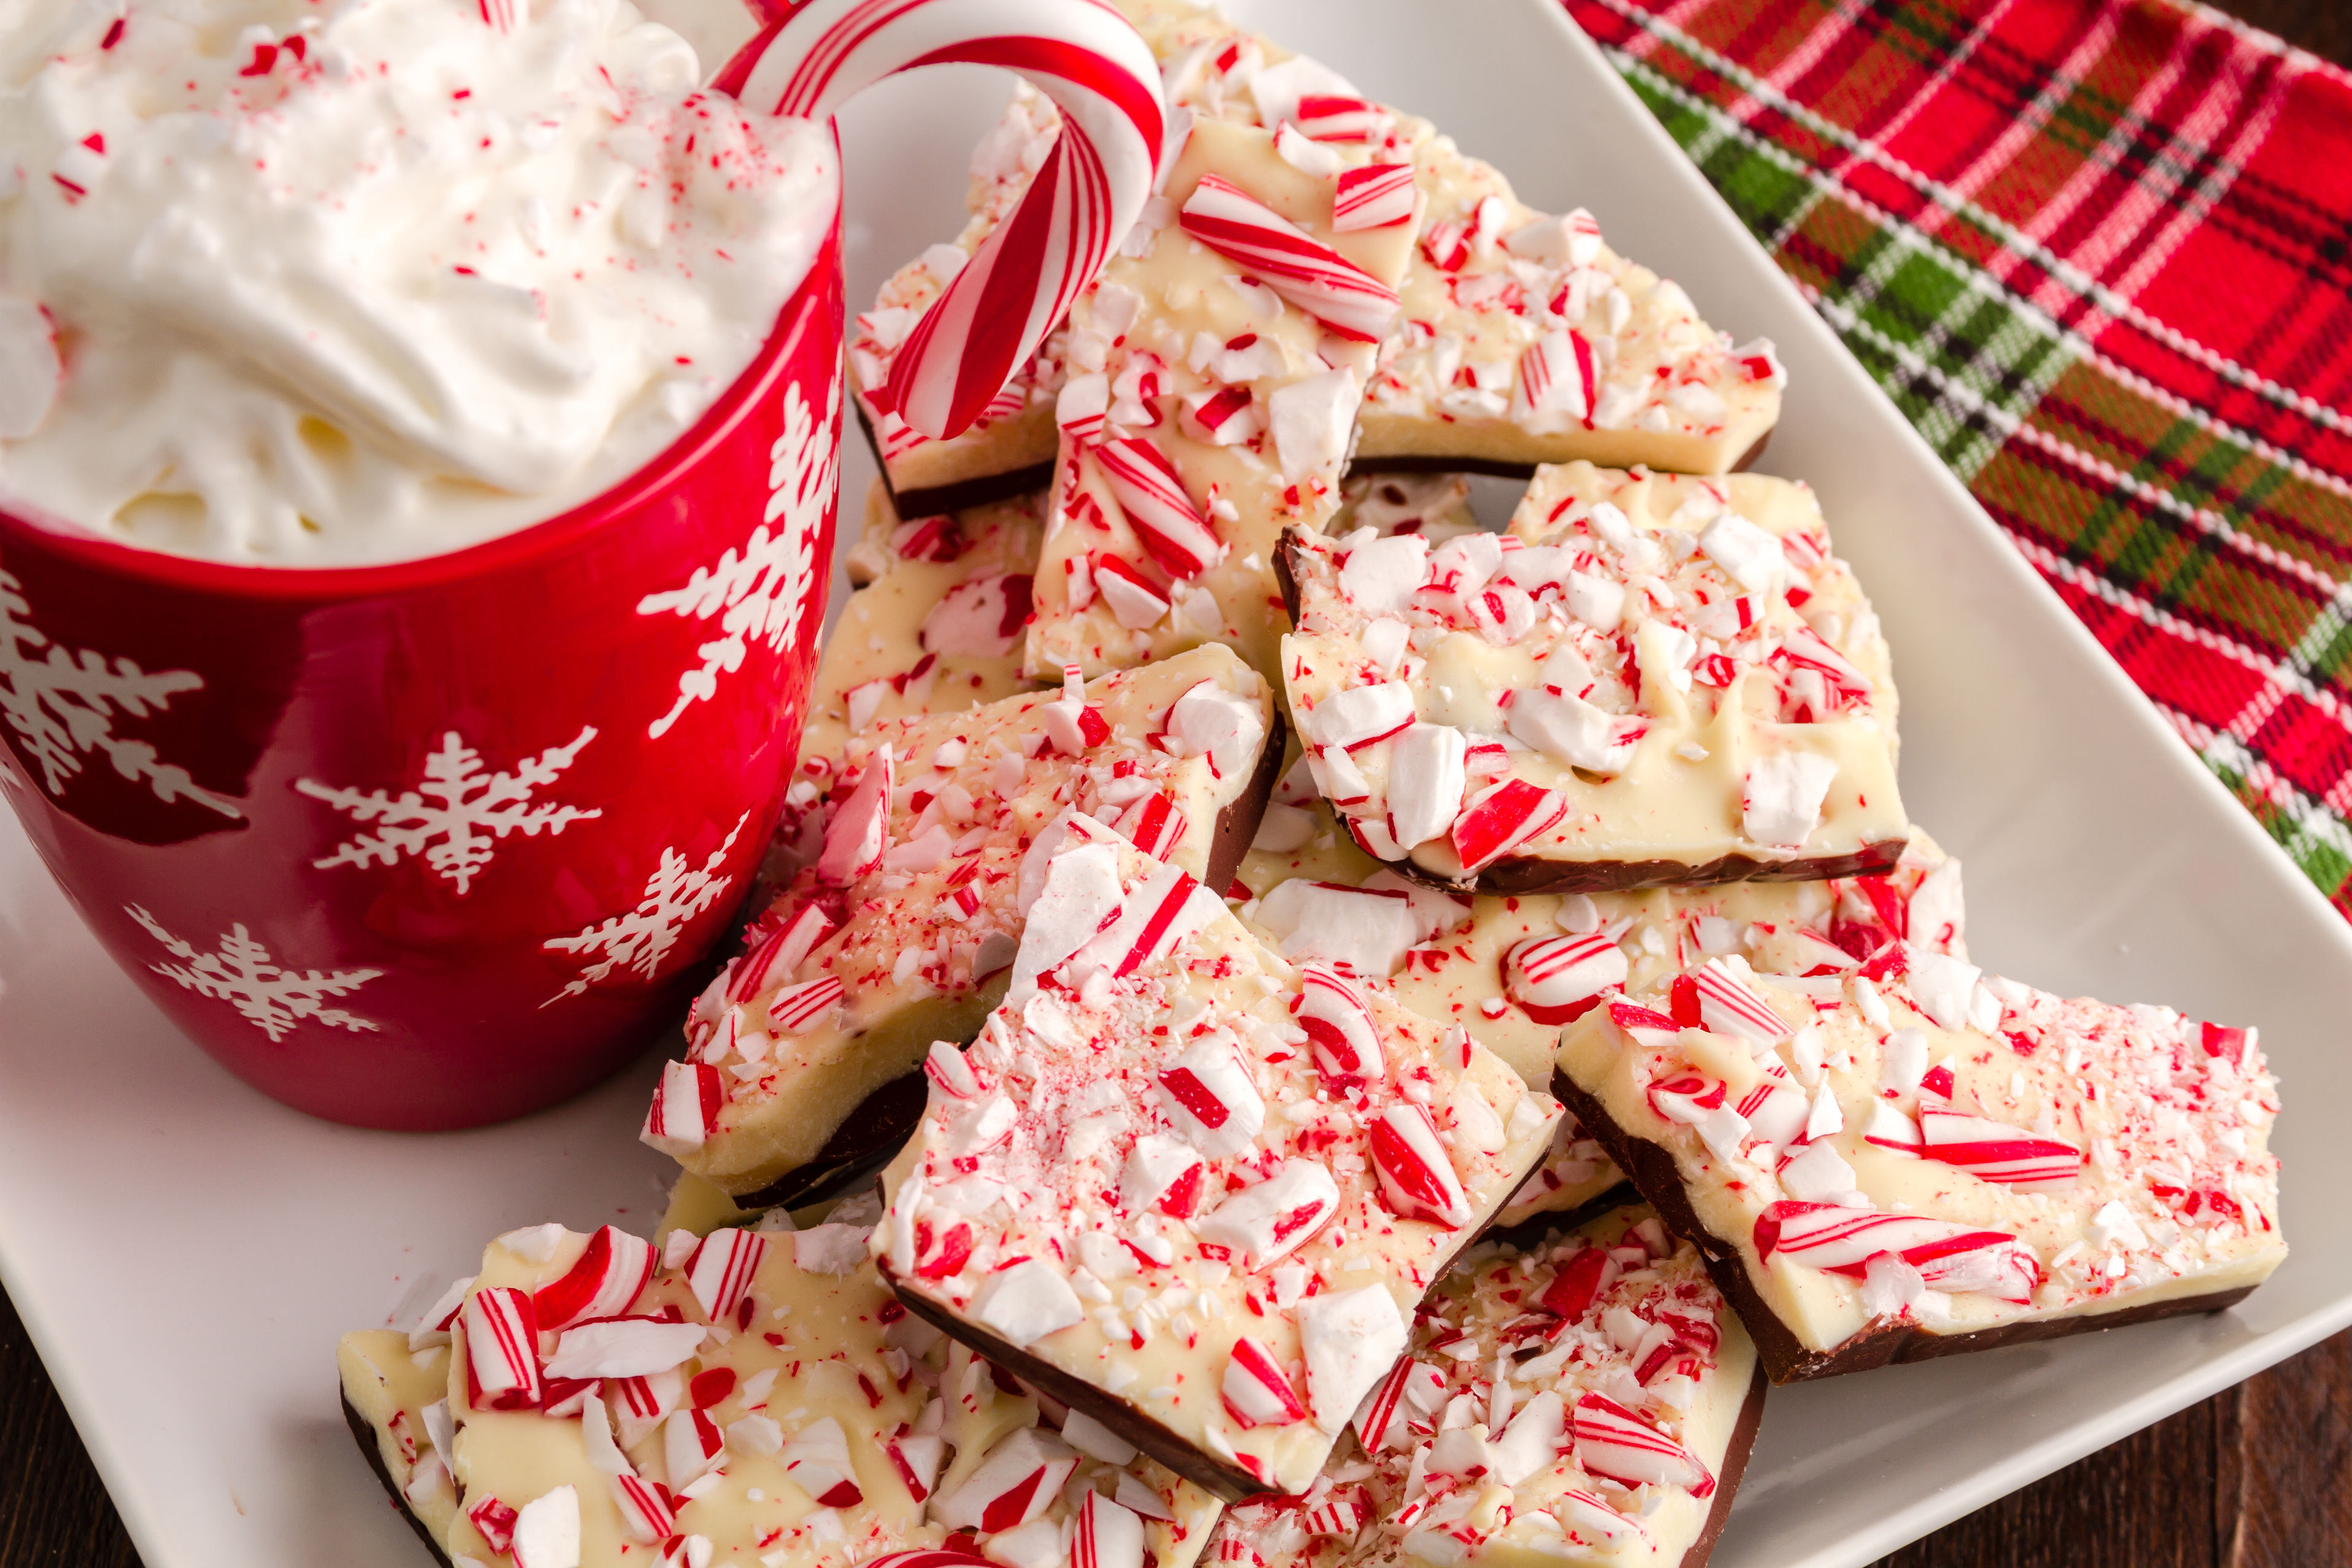 Festive Dessert Recipe: Easy Peppermint Bark